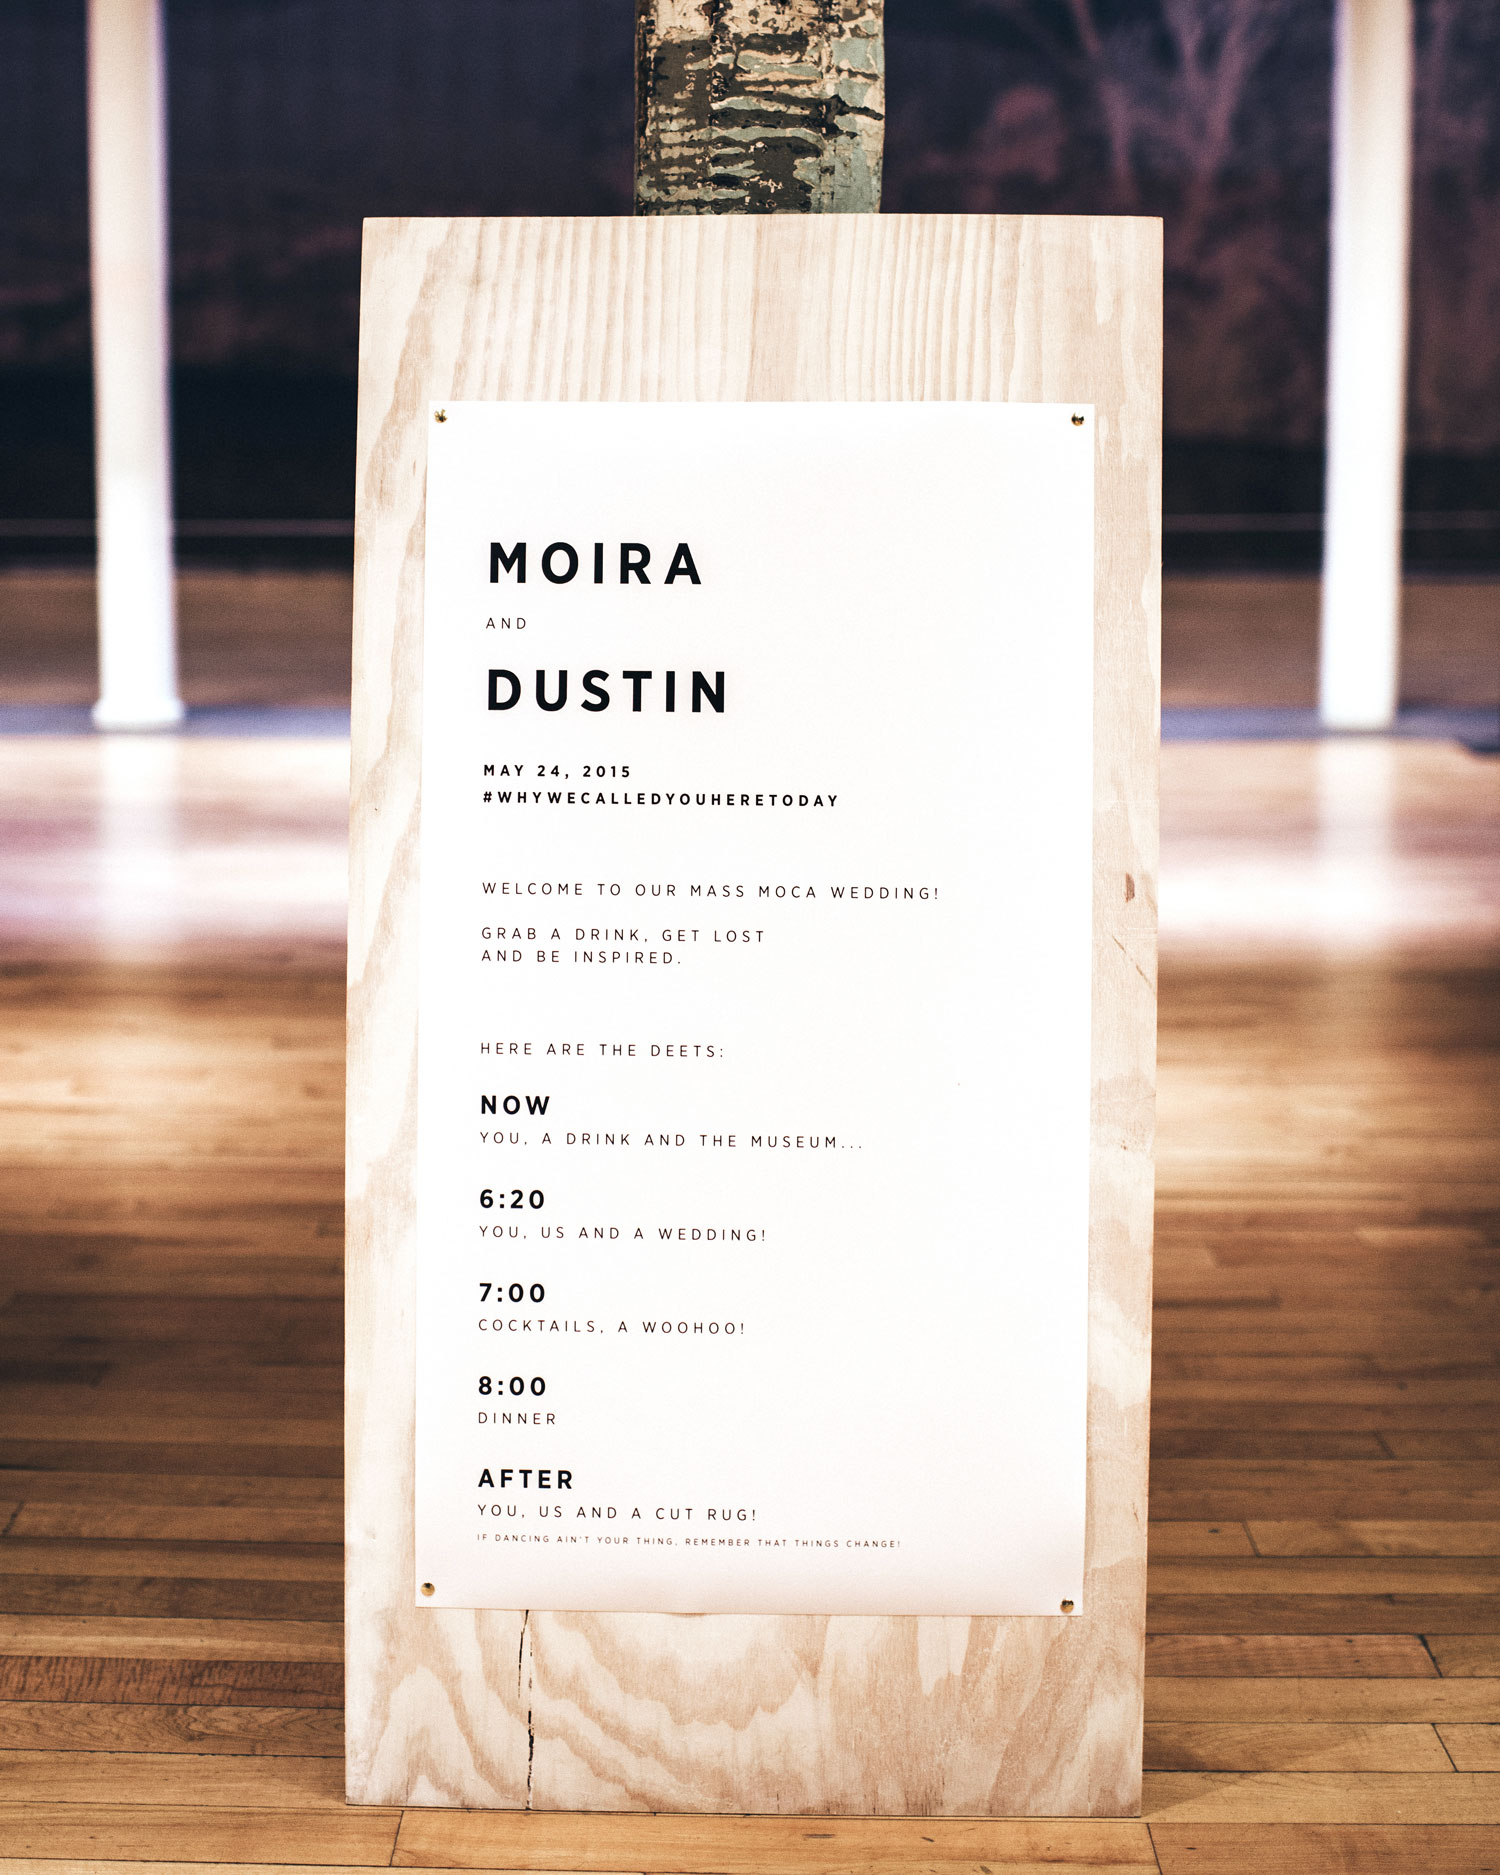 moira-dustin-wedding-timeline-massachusetts-180-s112717.jpg